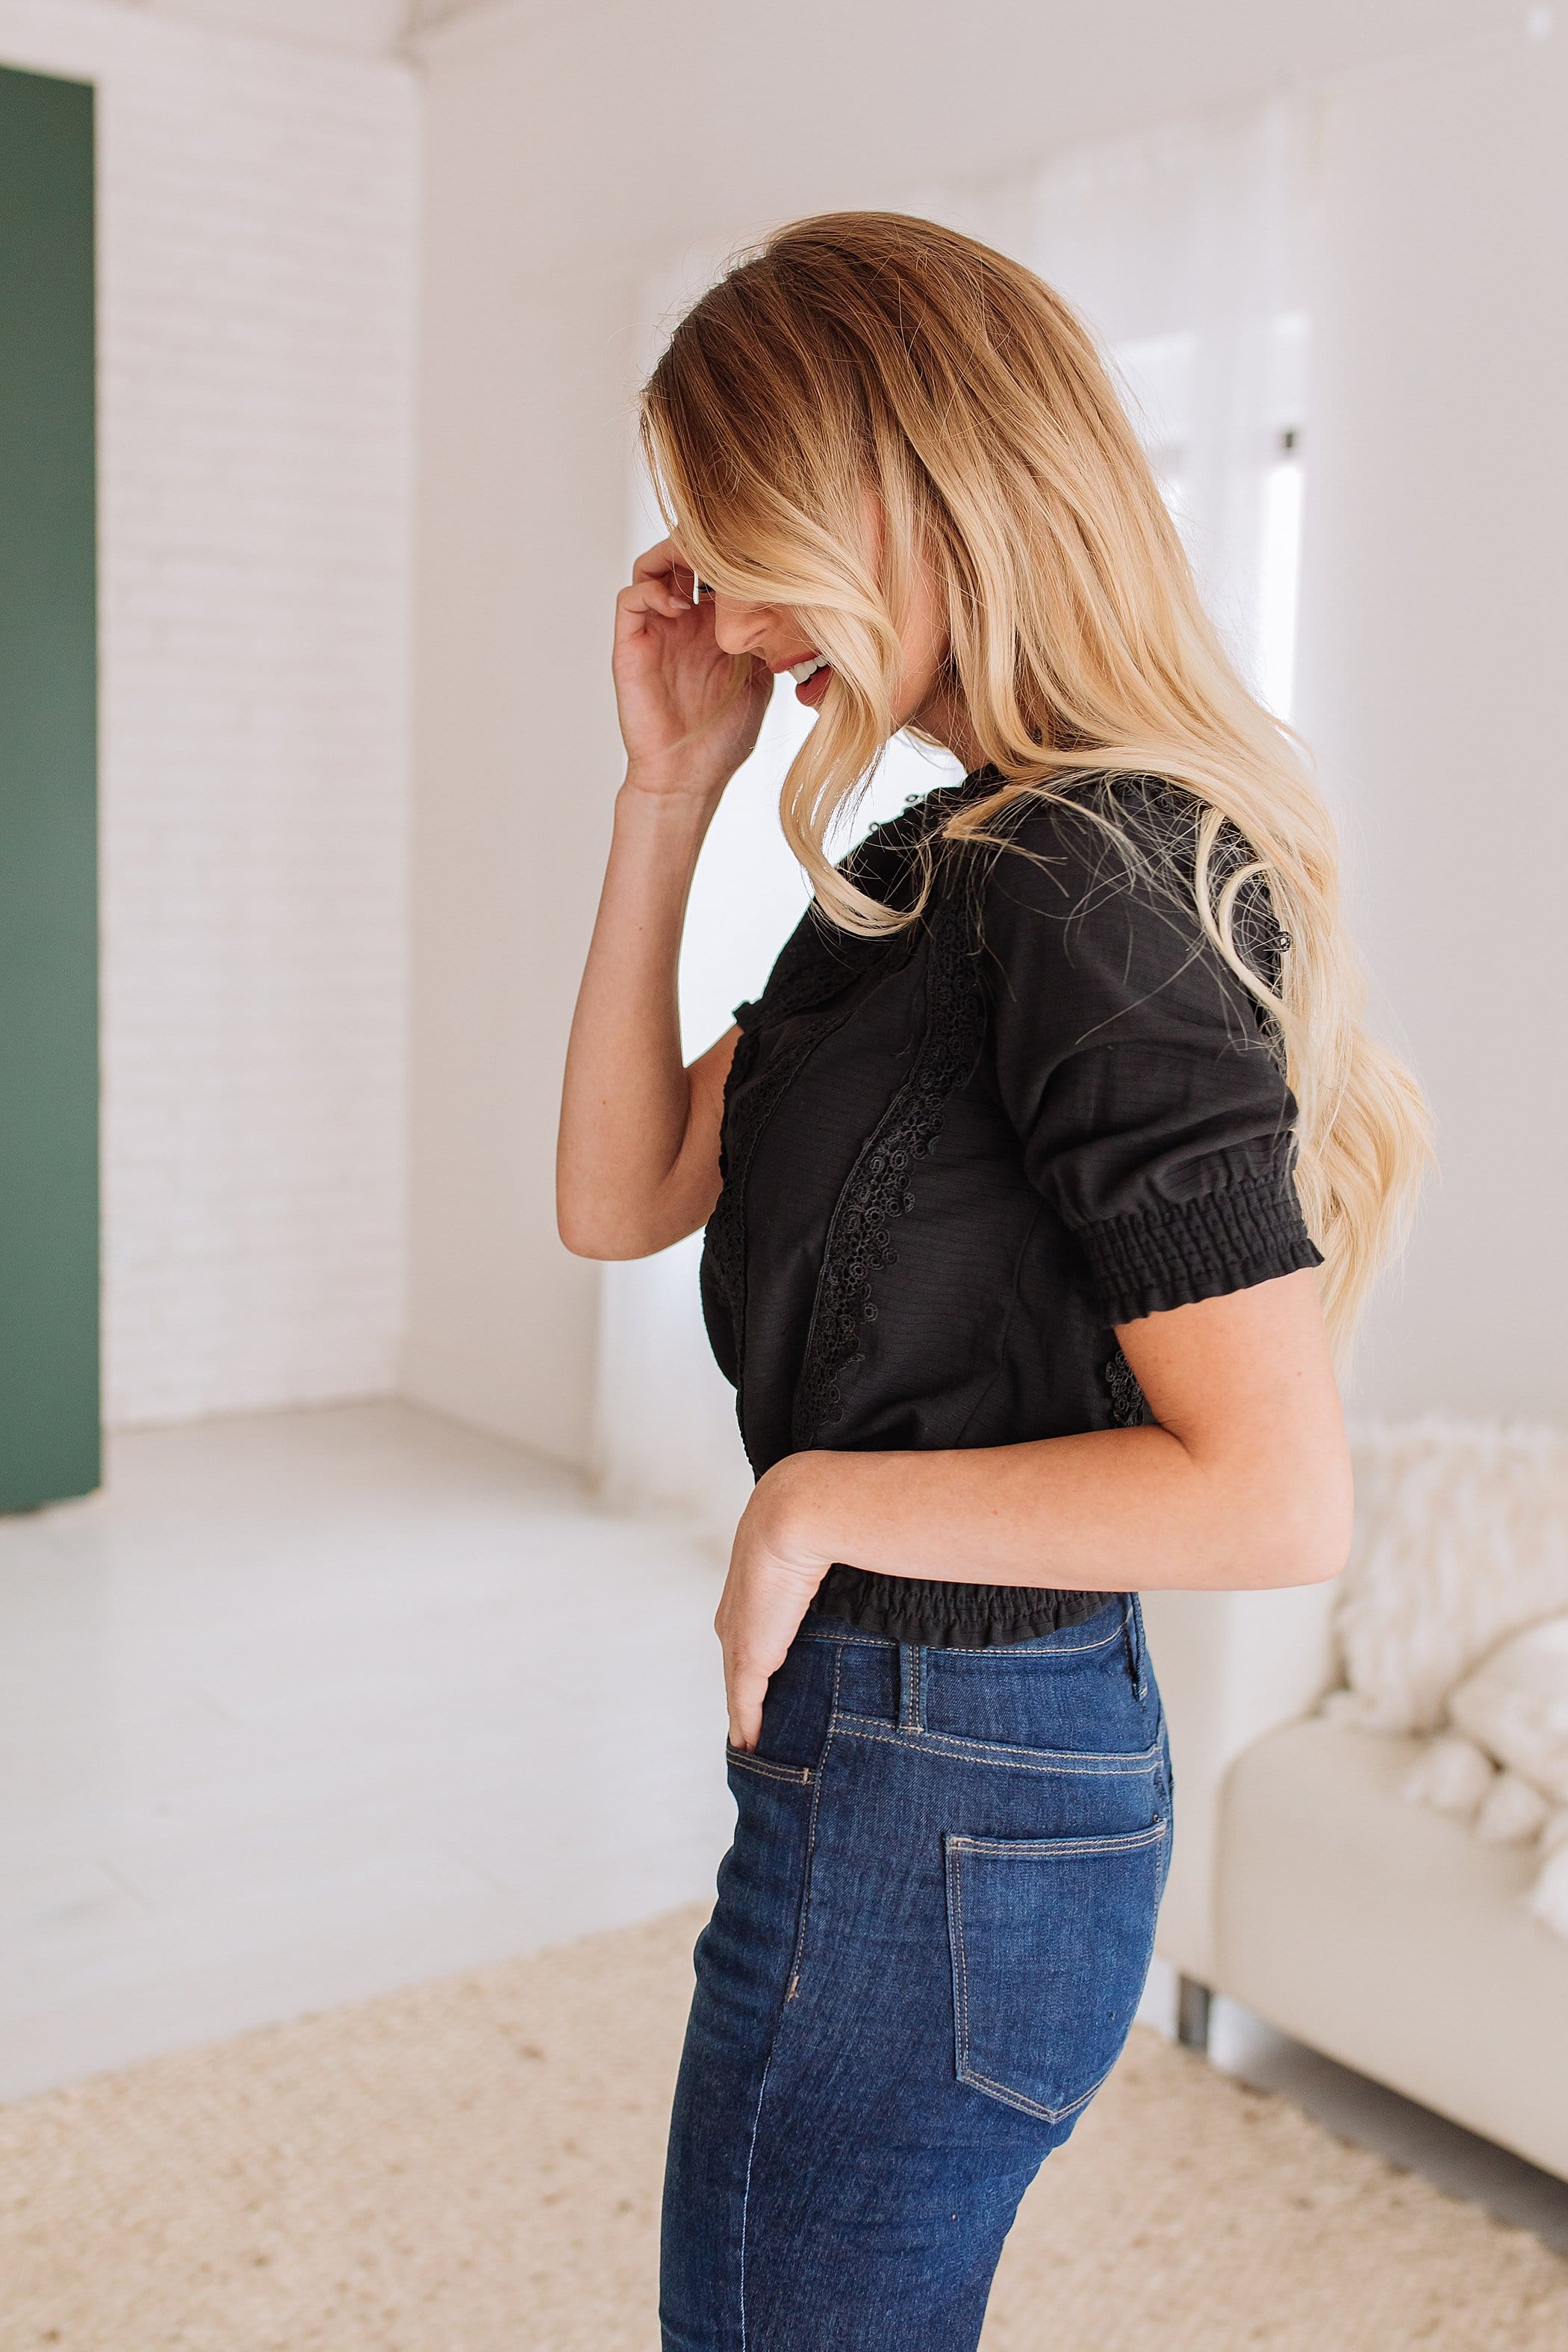 The Midtown Smocked Lace Top in Black and White